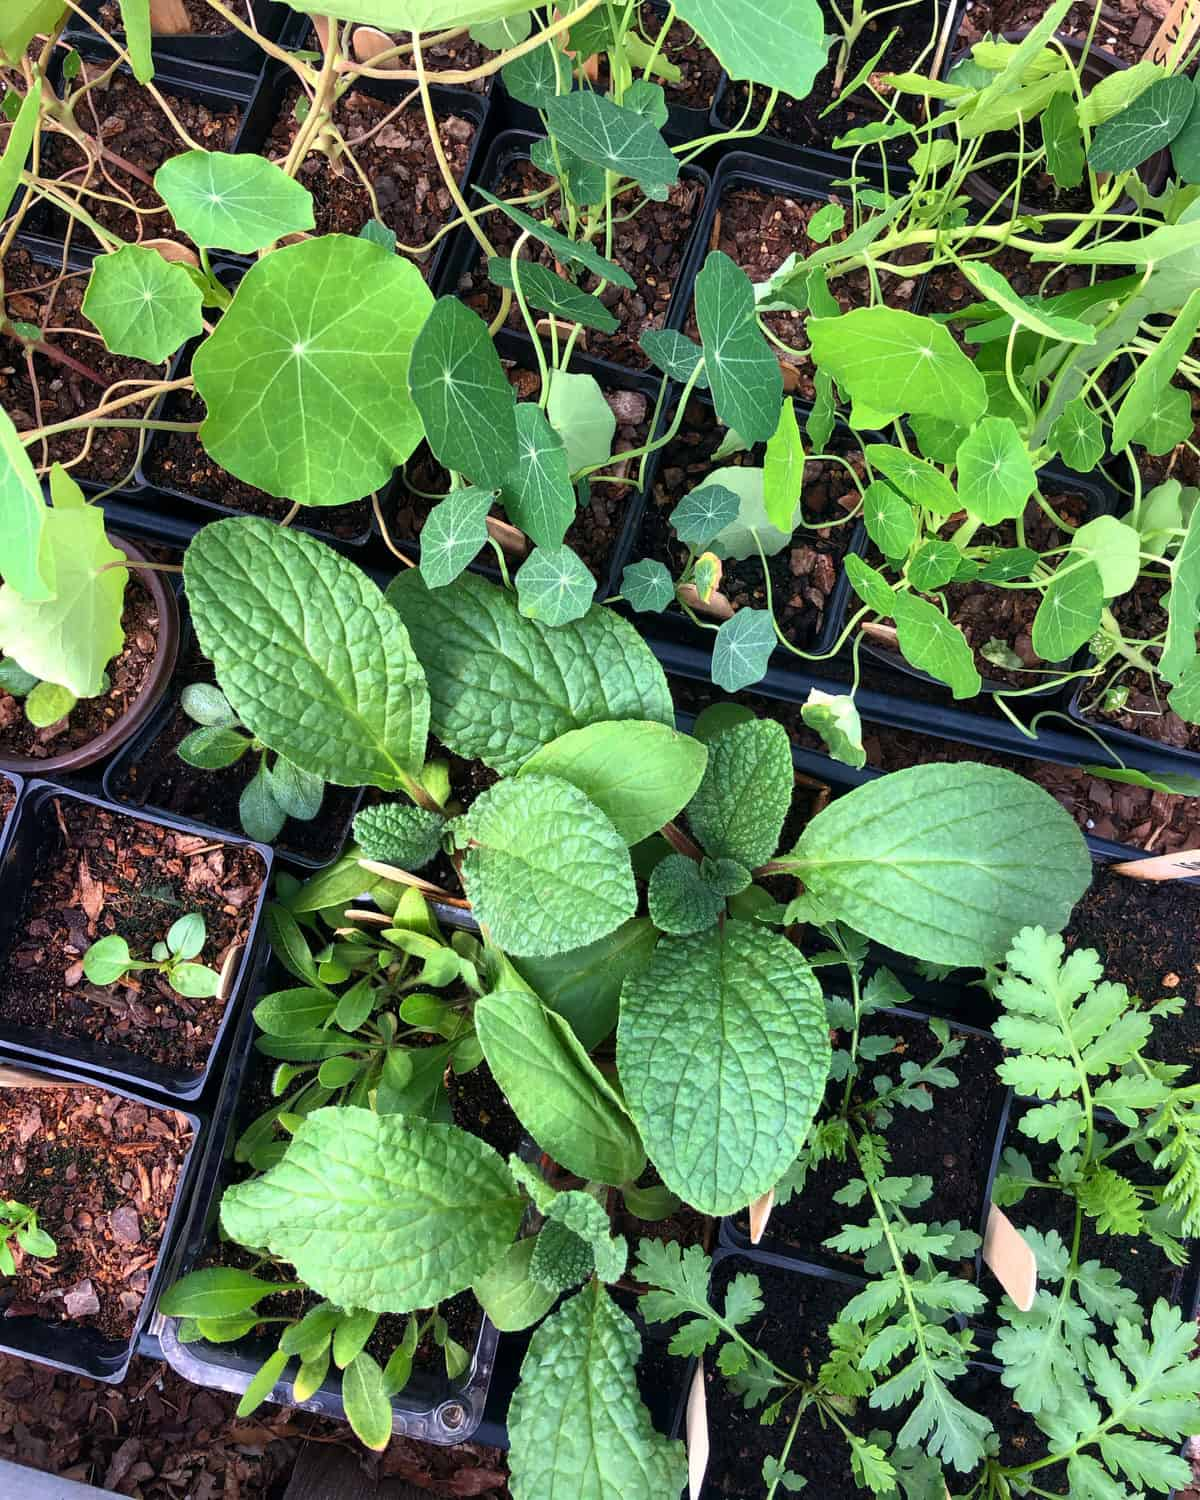 A tray of seedlings sit outside, hardening off and preparing to get planted in the soil